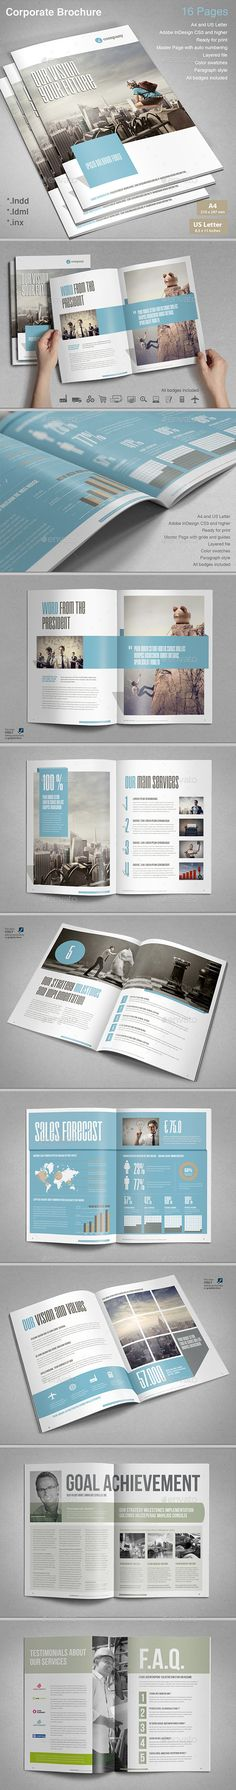 The Creative Brochure Square Brochure Template Brochures And